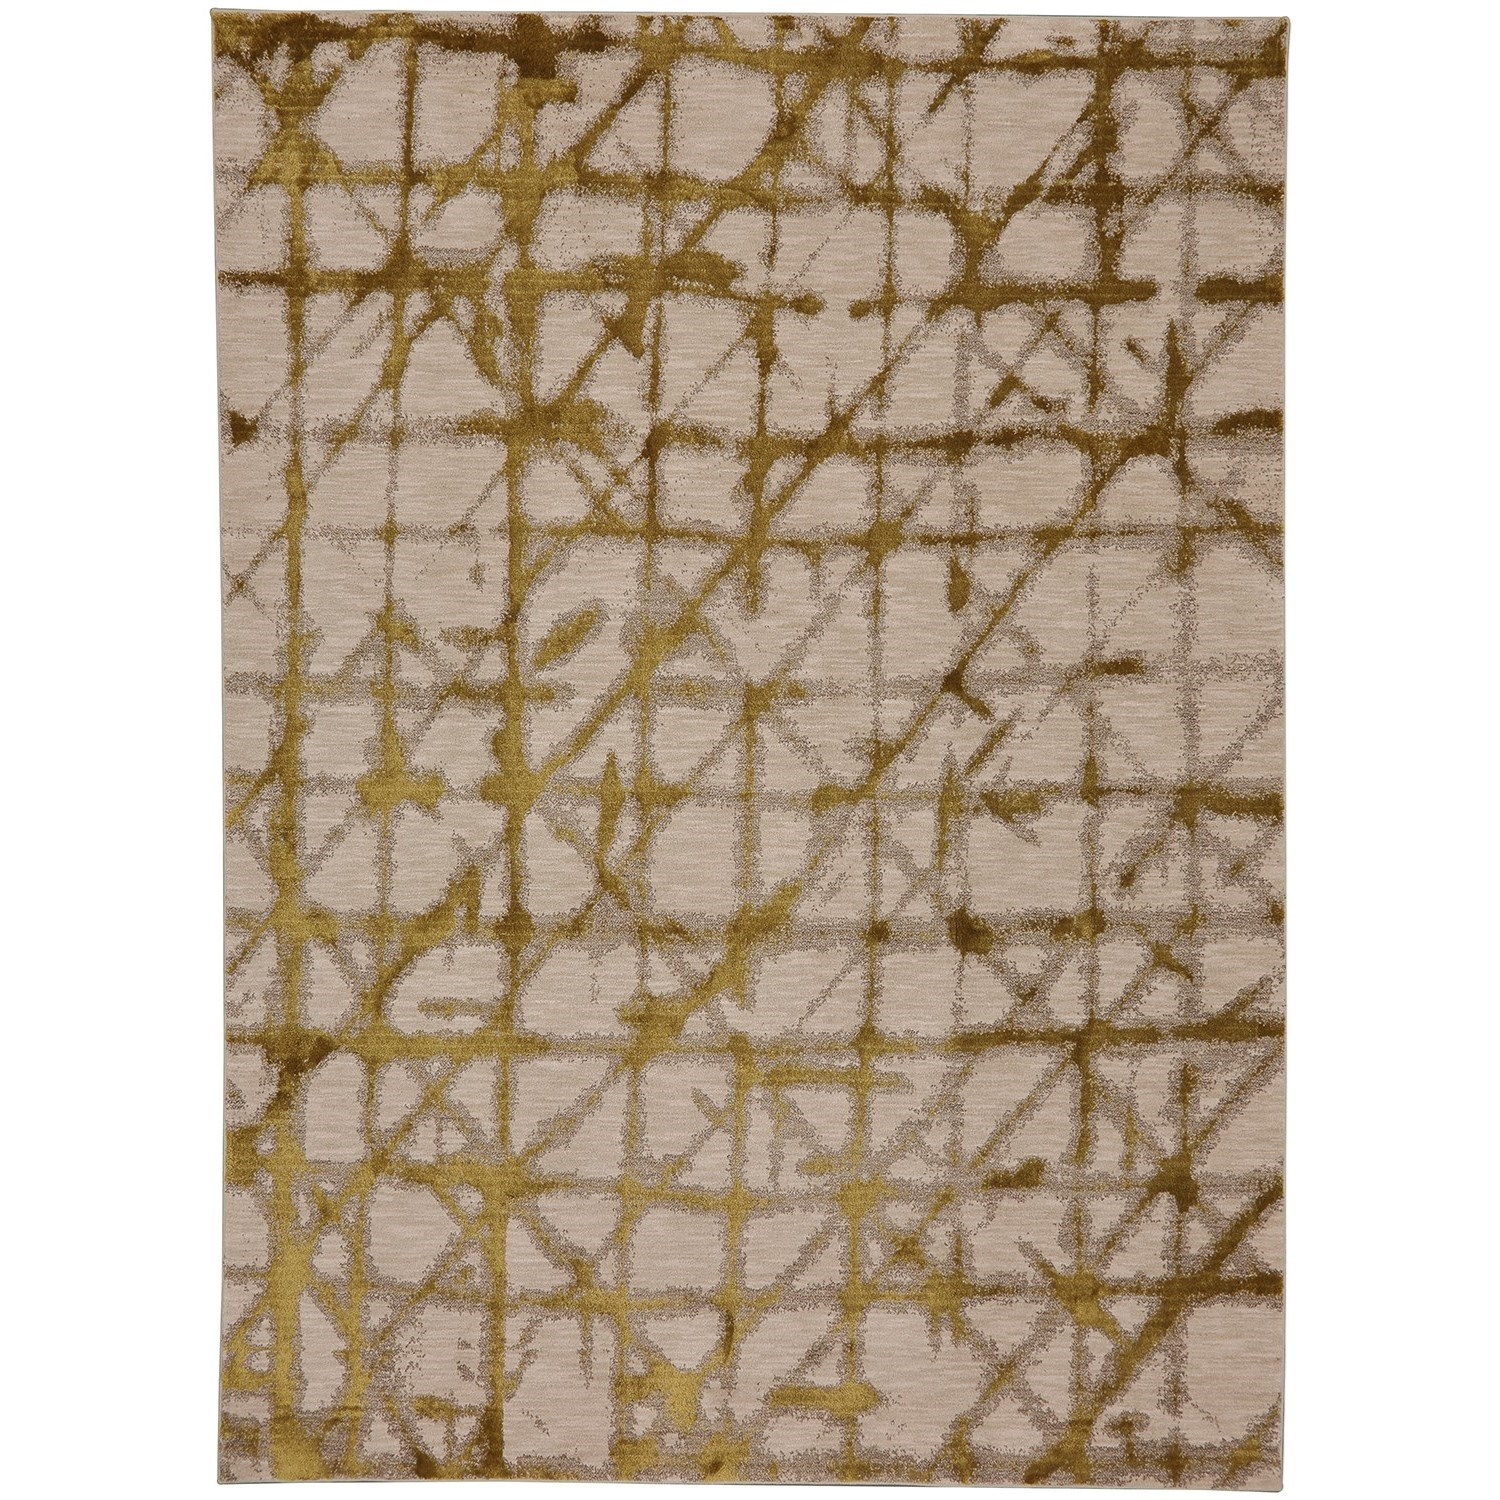 "Enigma 9' 6""x12' 11"" Rectangle Geometric Area Rug by Karastan Rugs at Darvin Furniture"